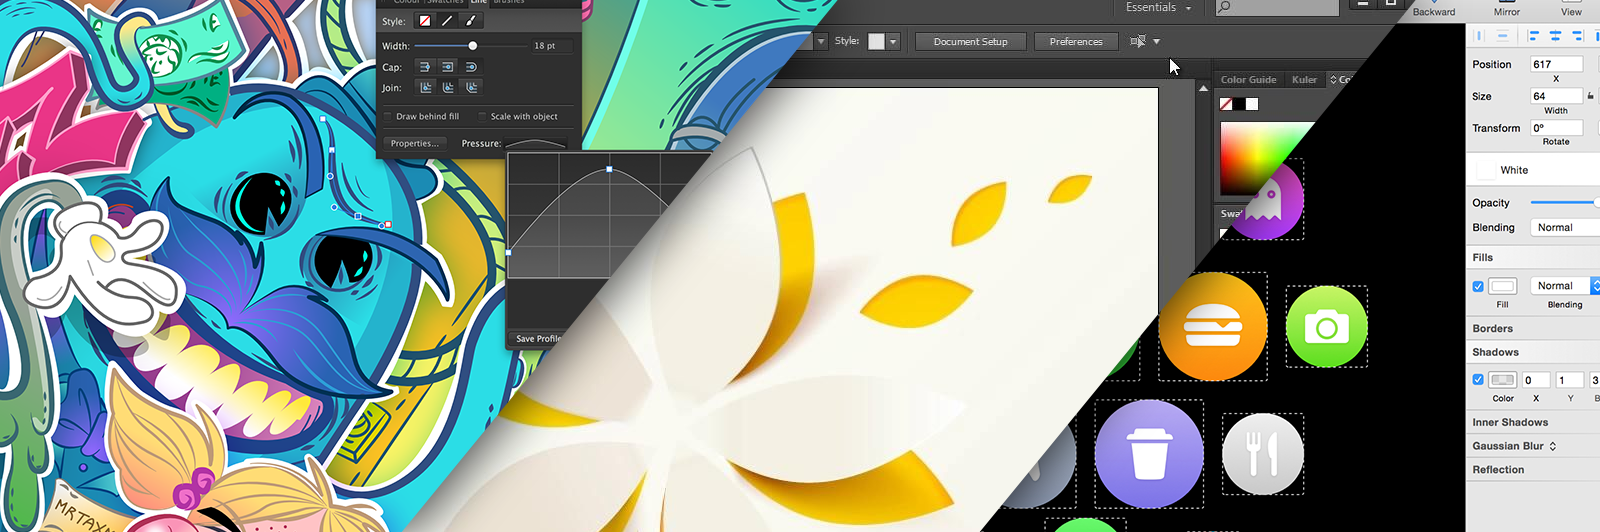 Can Sketch or Affinity designer replace Adobe Illustrator?